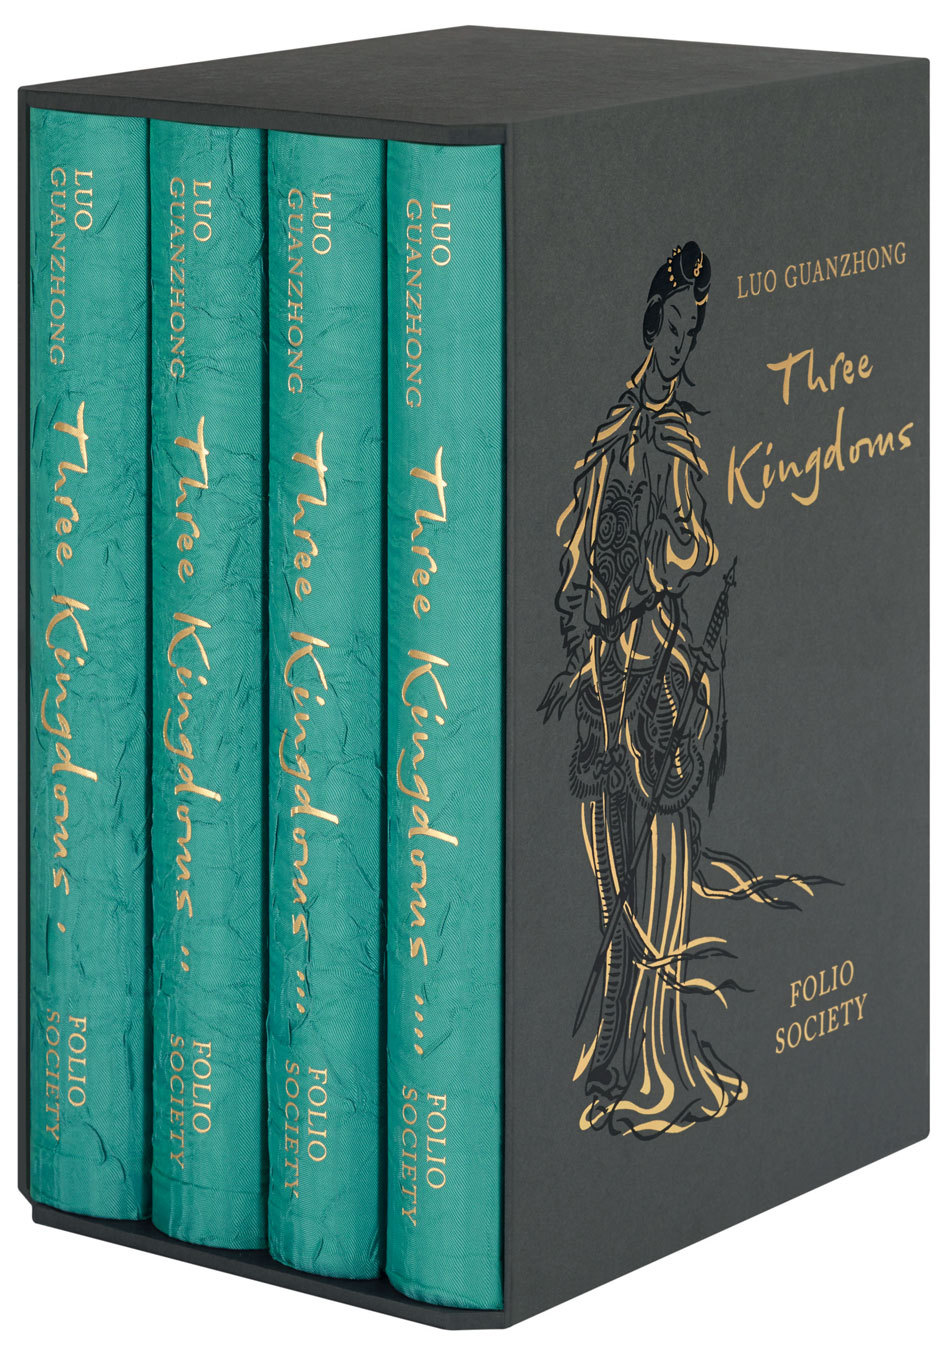 Three Kingdoms: Classic Novel in Four Volumes Luo Guanzhong